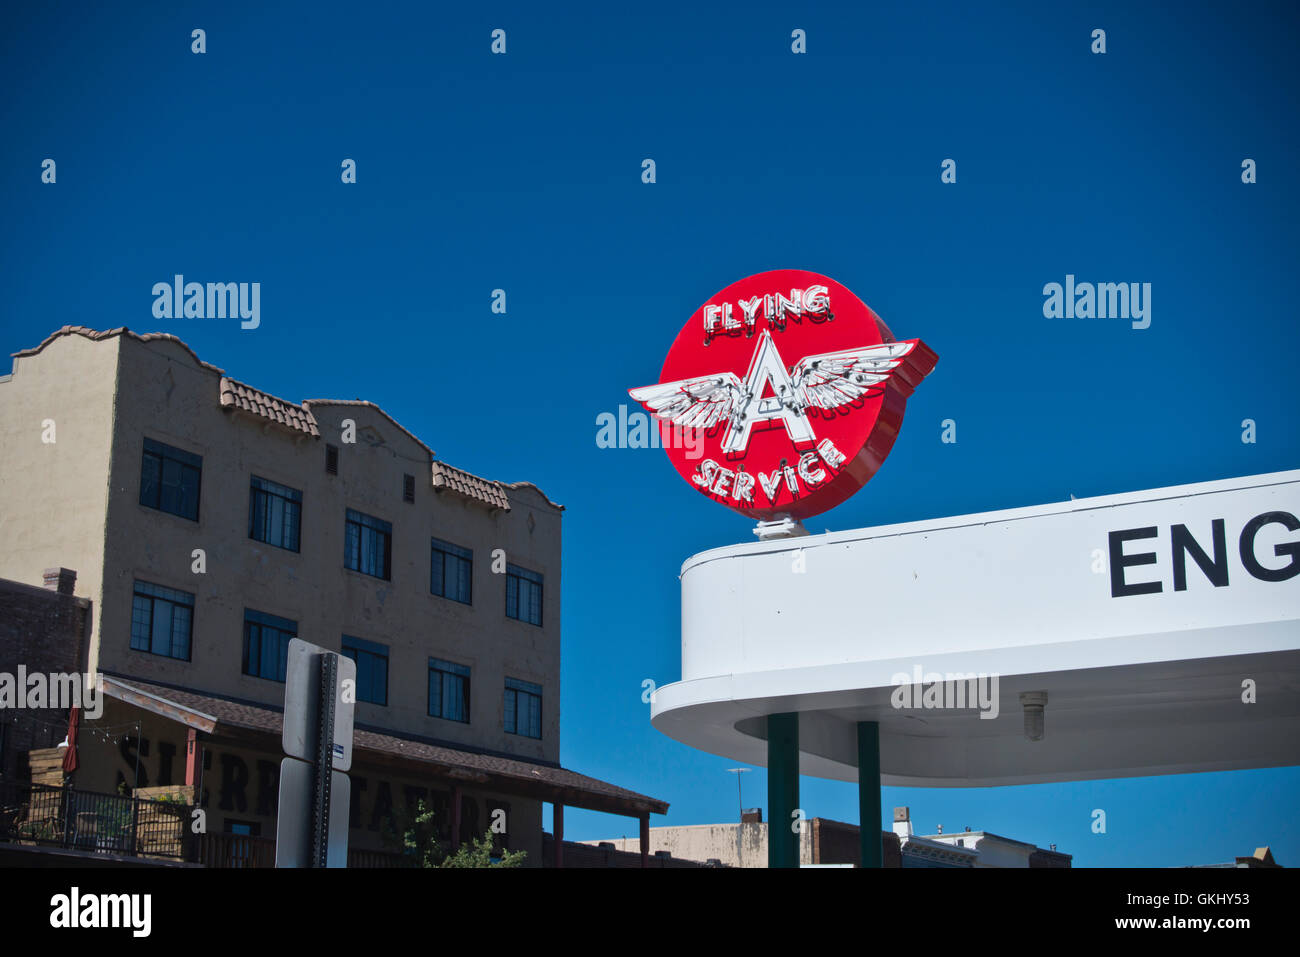 Flying A Service station sign in Truckee, CA - Stock Image